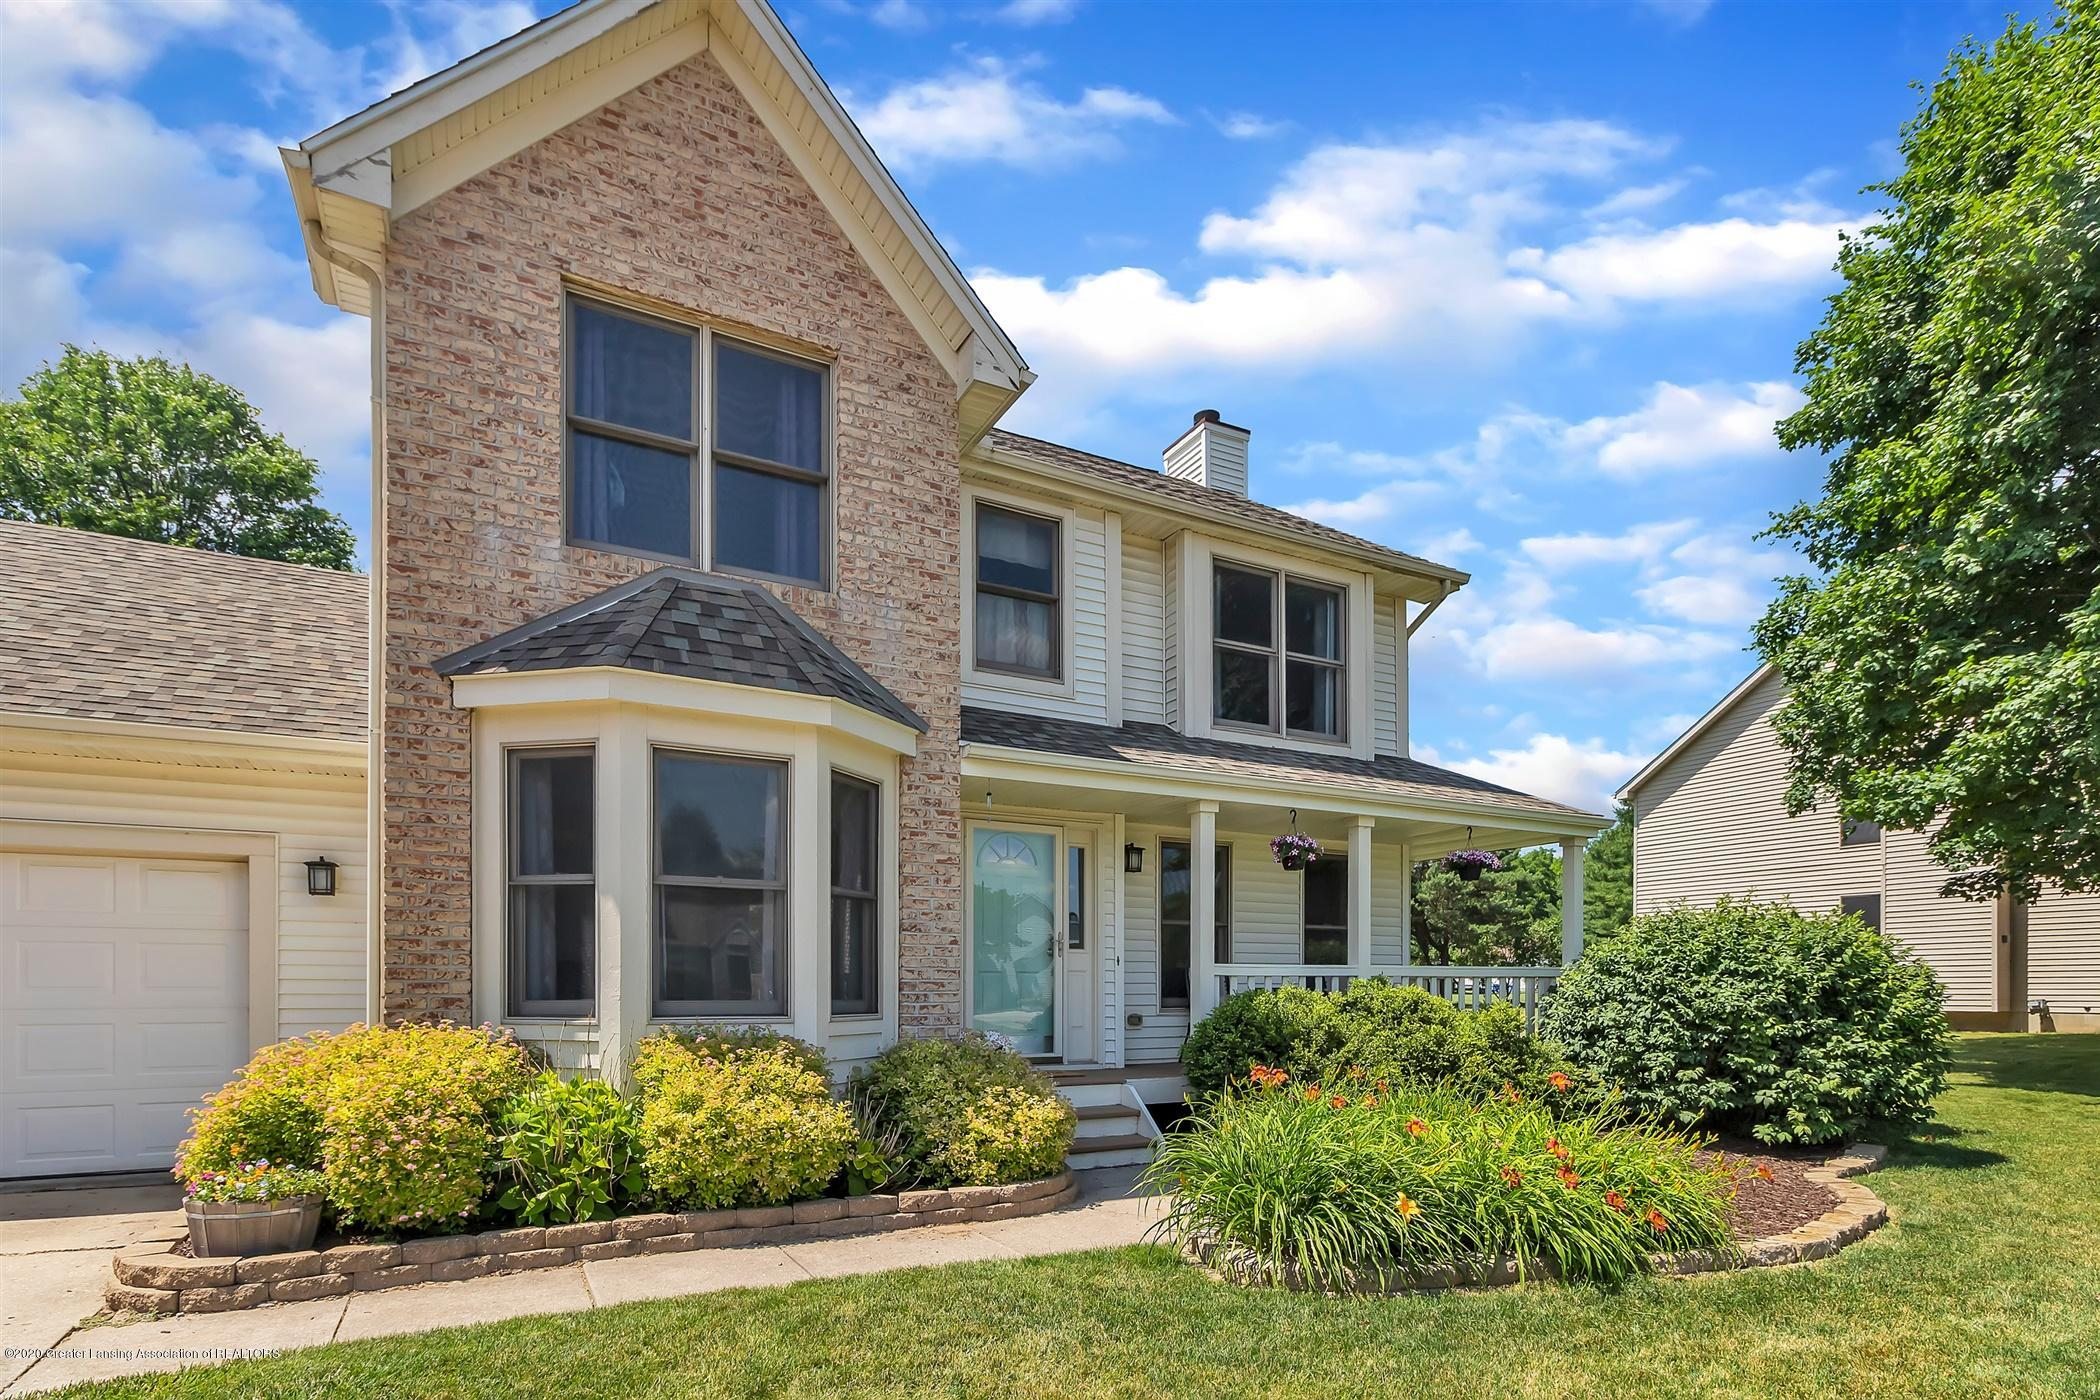 2945 Whistlewood Way - 32-2945Whistlewood-WindowStill-Real - 32